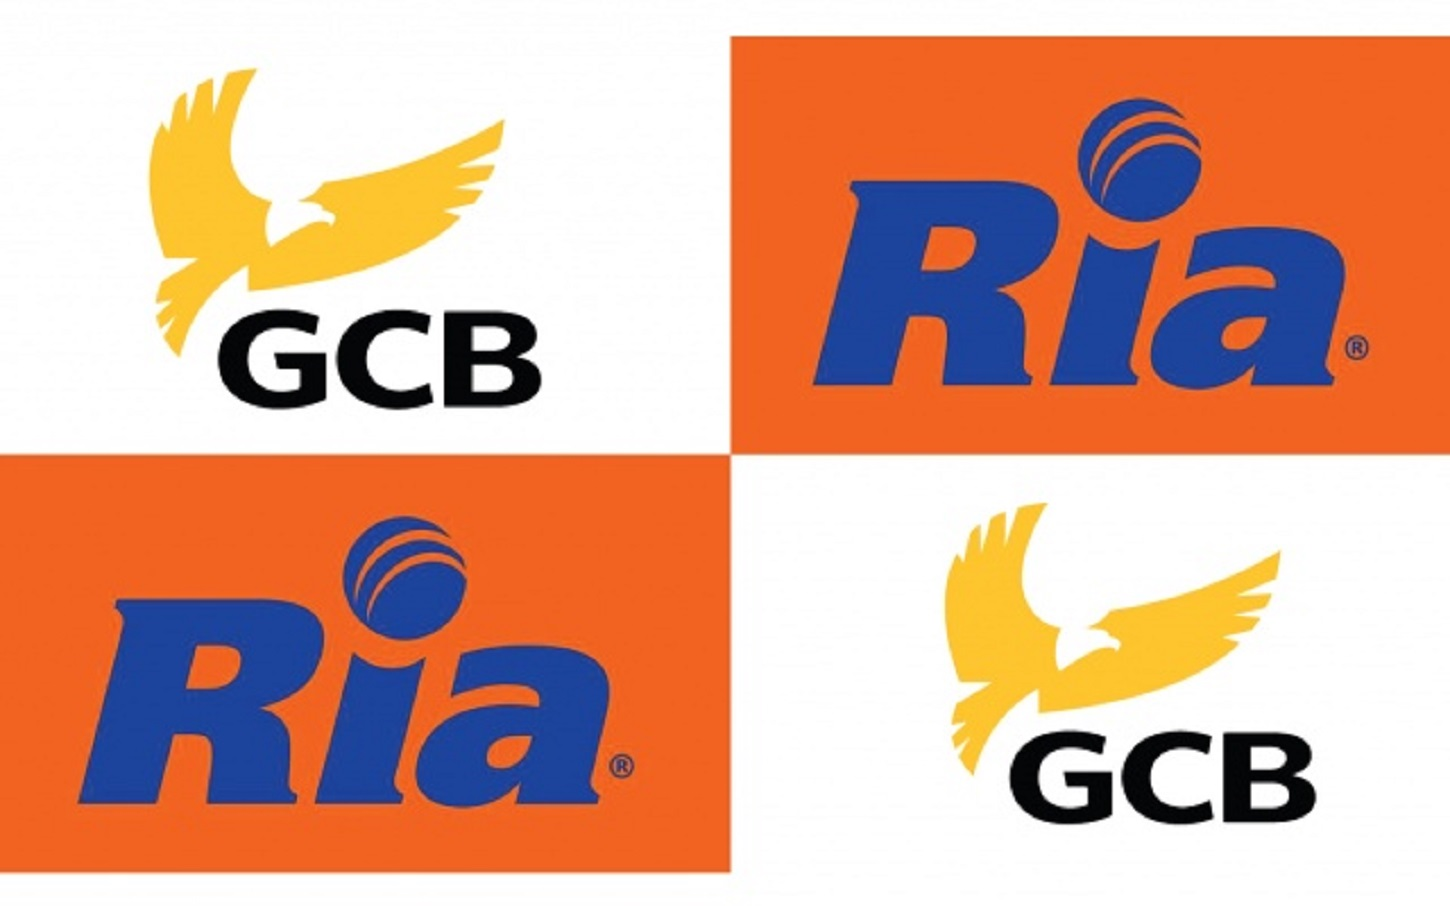 Gcb Ria Direct To Account Transfer Takes Off